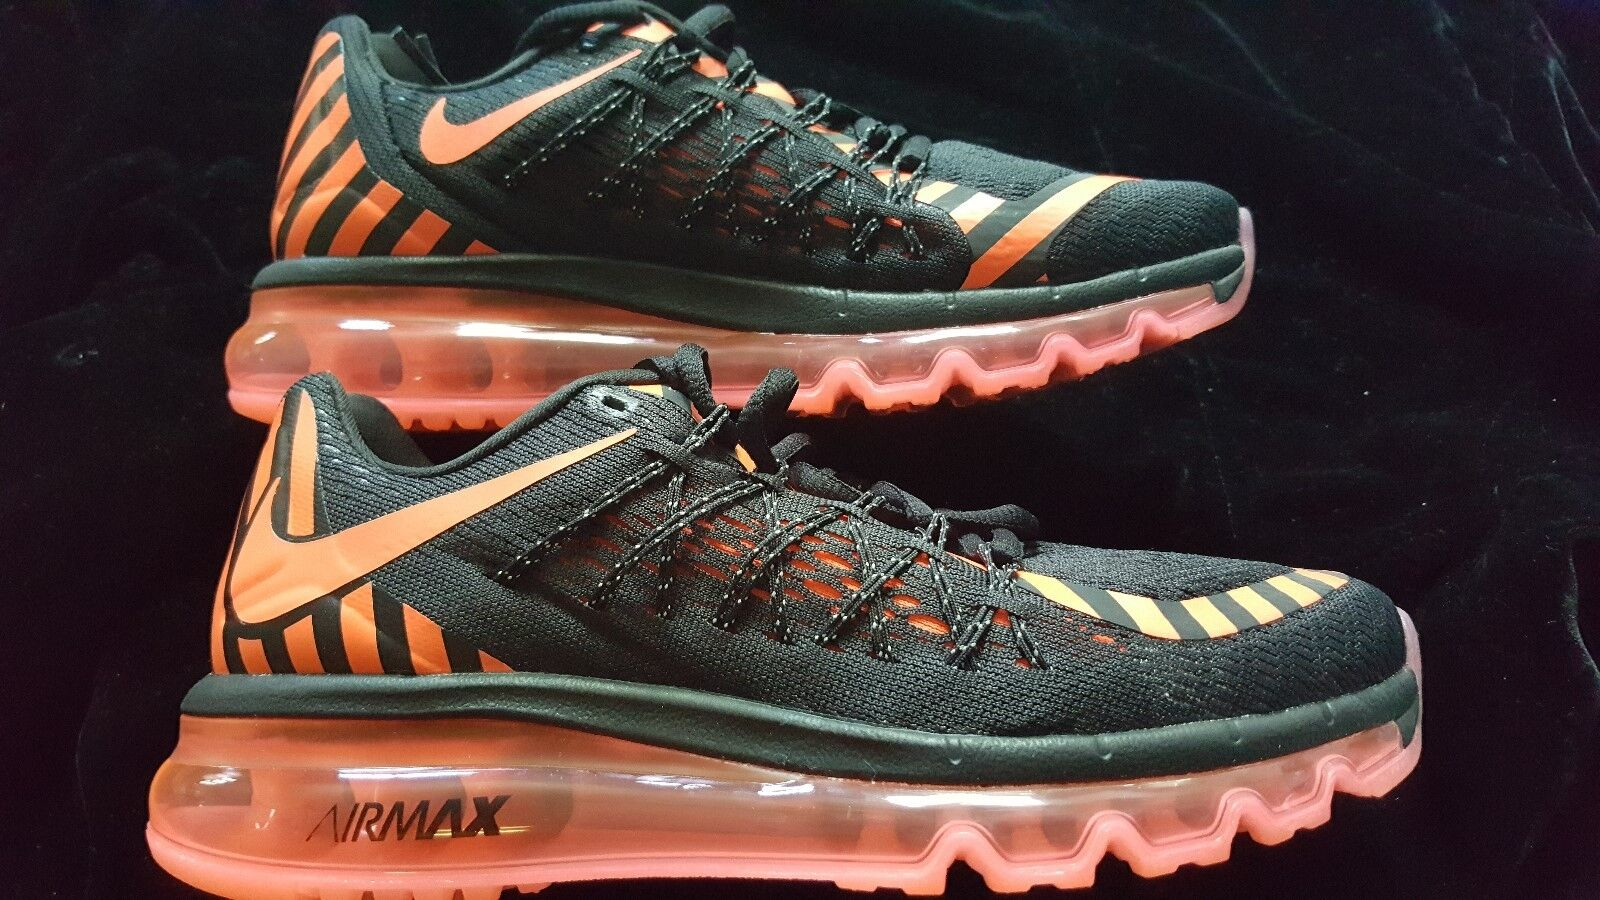 NIKE WOMENS AIR MAX 2015 ANNIVERSARY BLACK PINK  SIZE 7